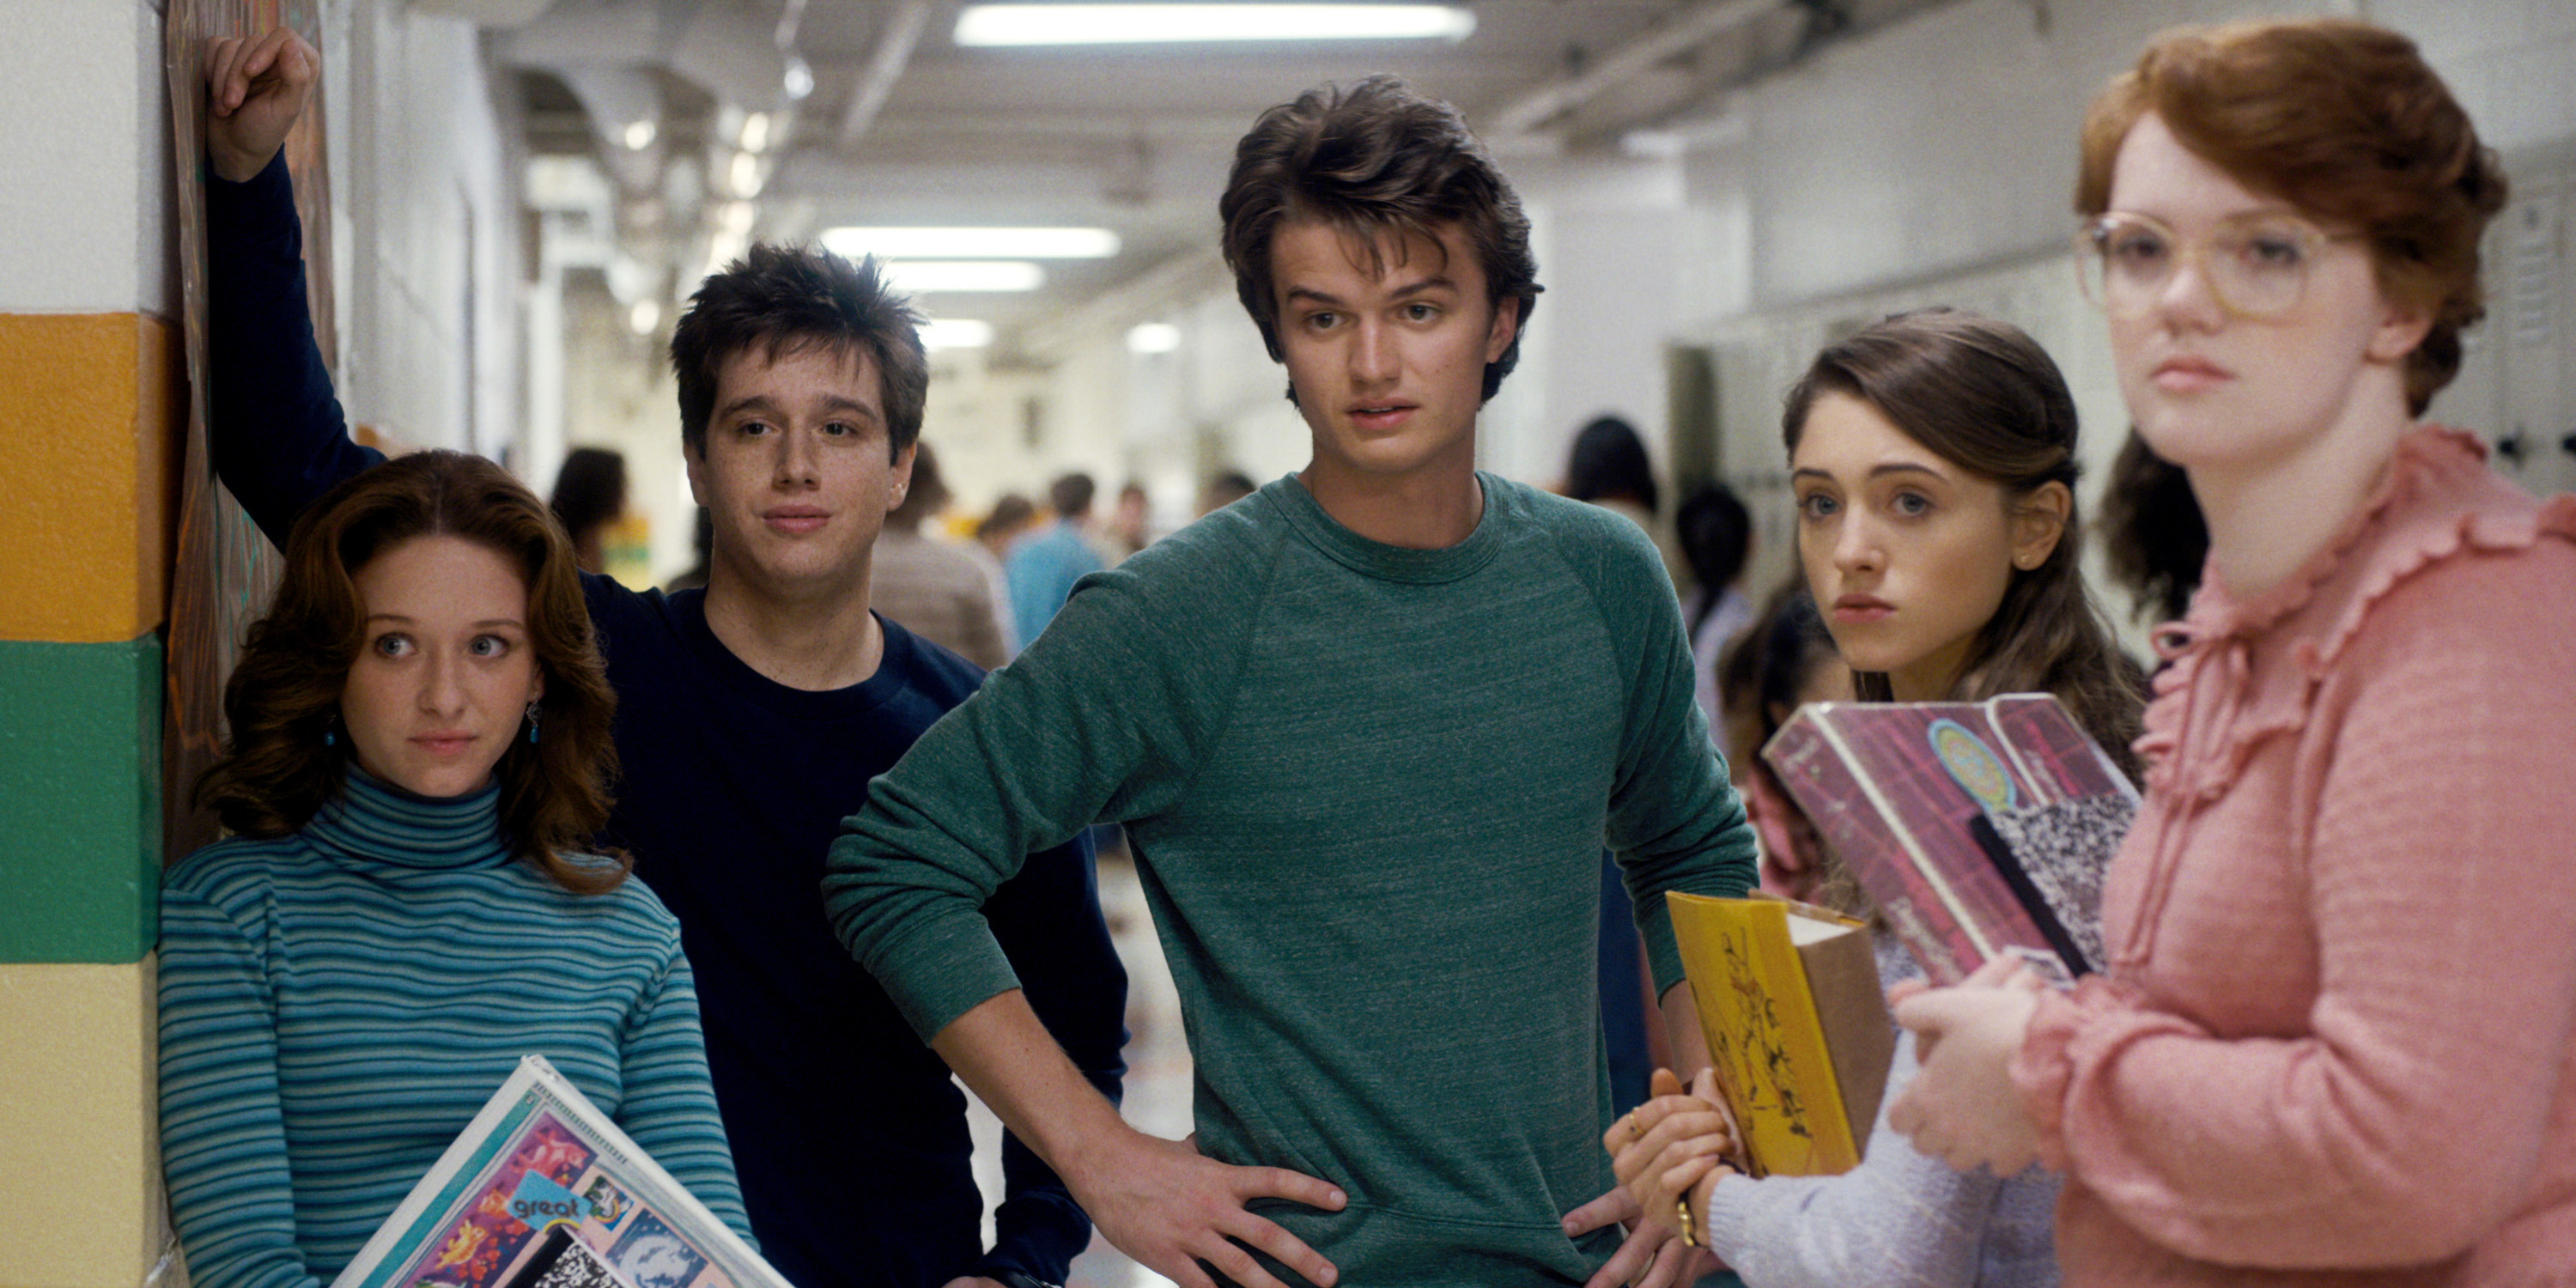 Steve standing surrounded by his friends in Season 1